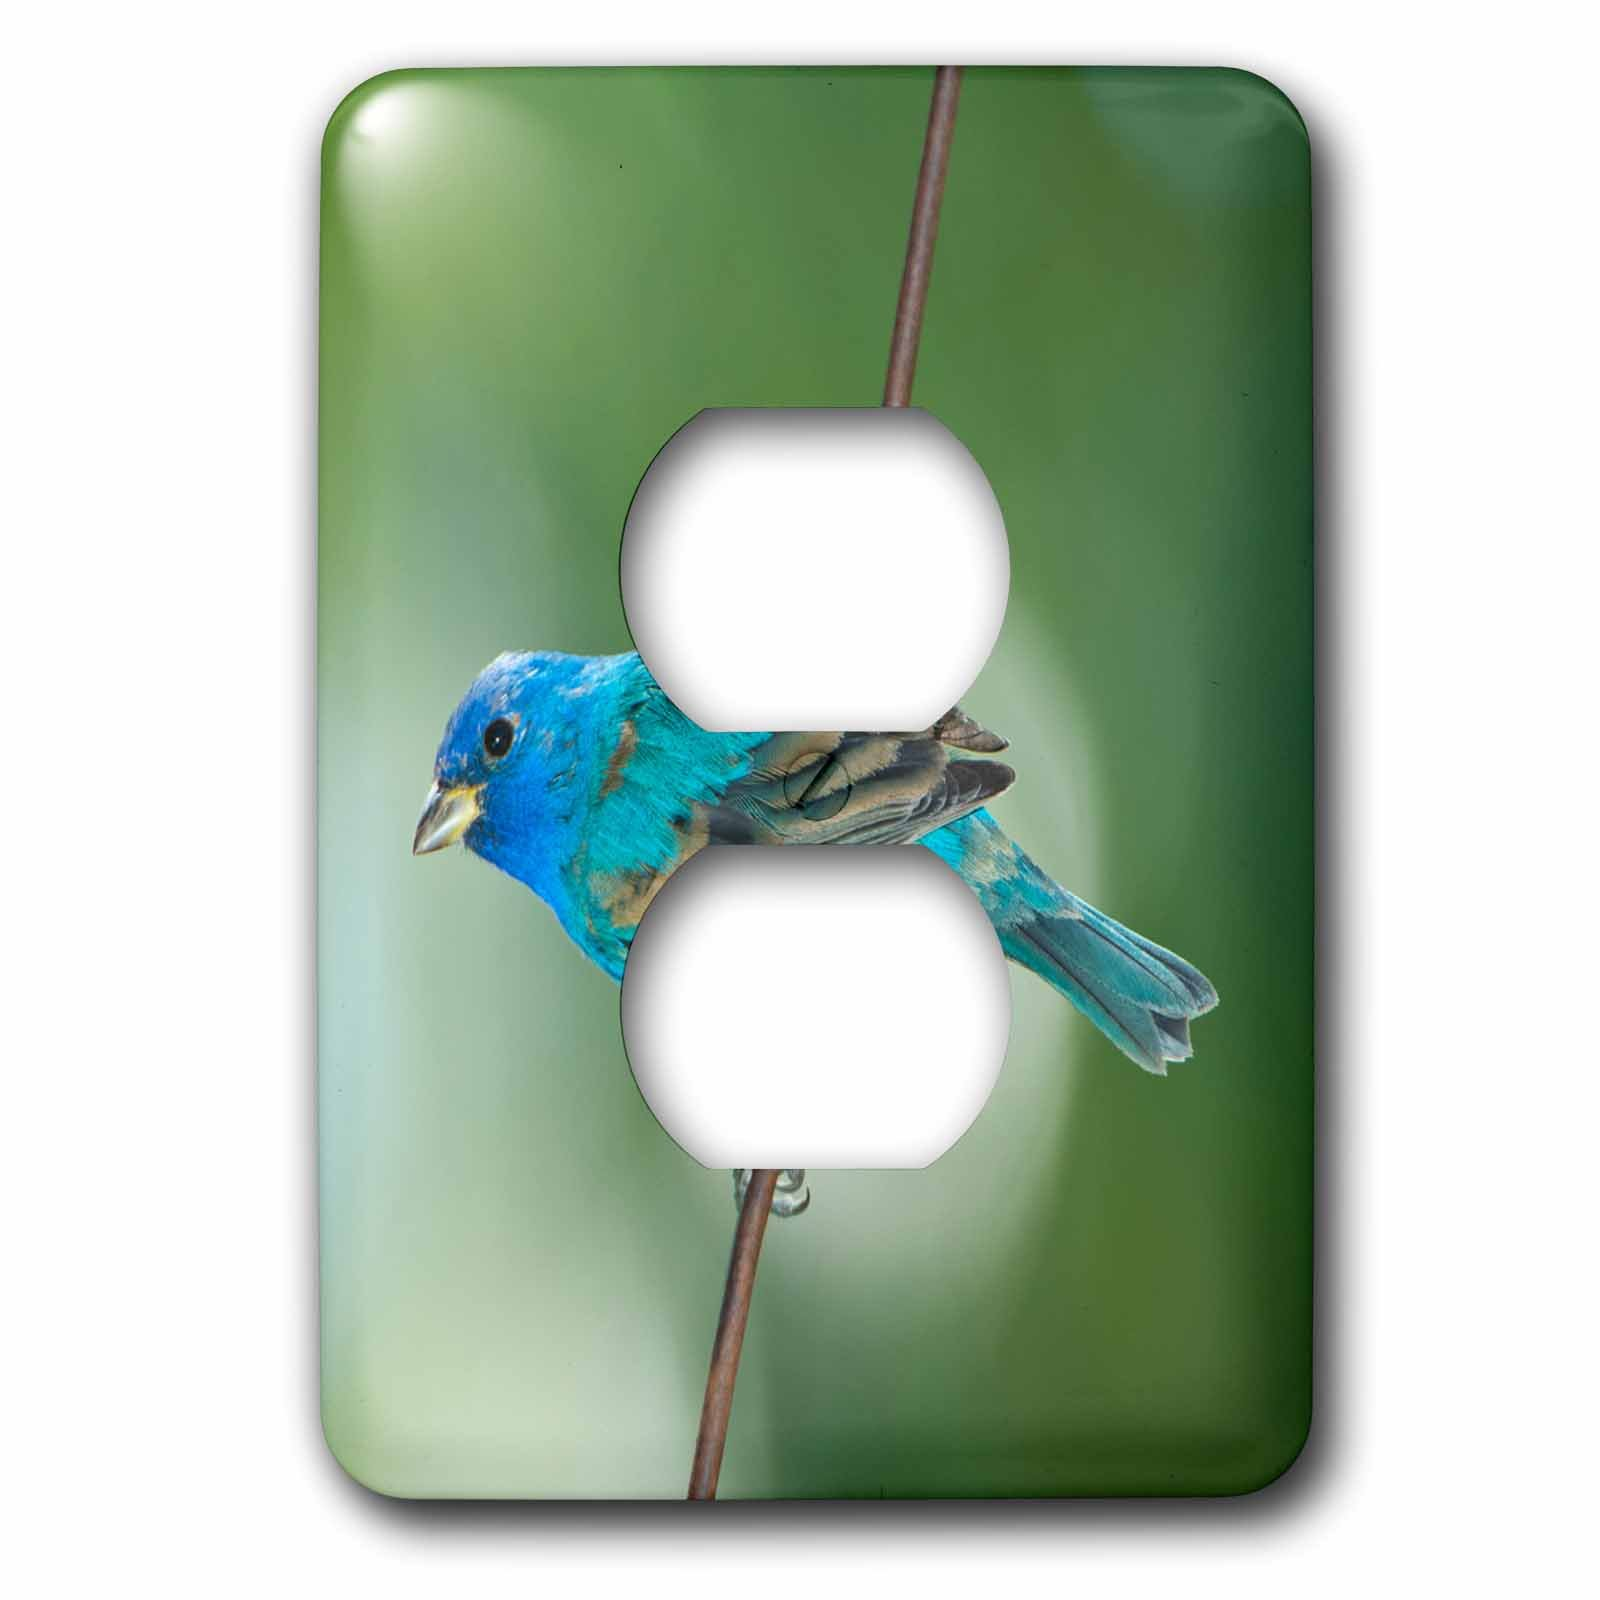 3dRose lsp_230463_6 USA, Florida, Immokalee, Indigo Bunting Perched on Wire Plug Outlet Cover, Mixed